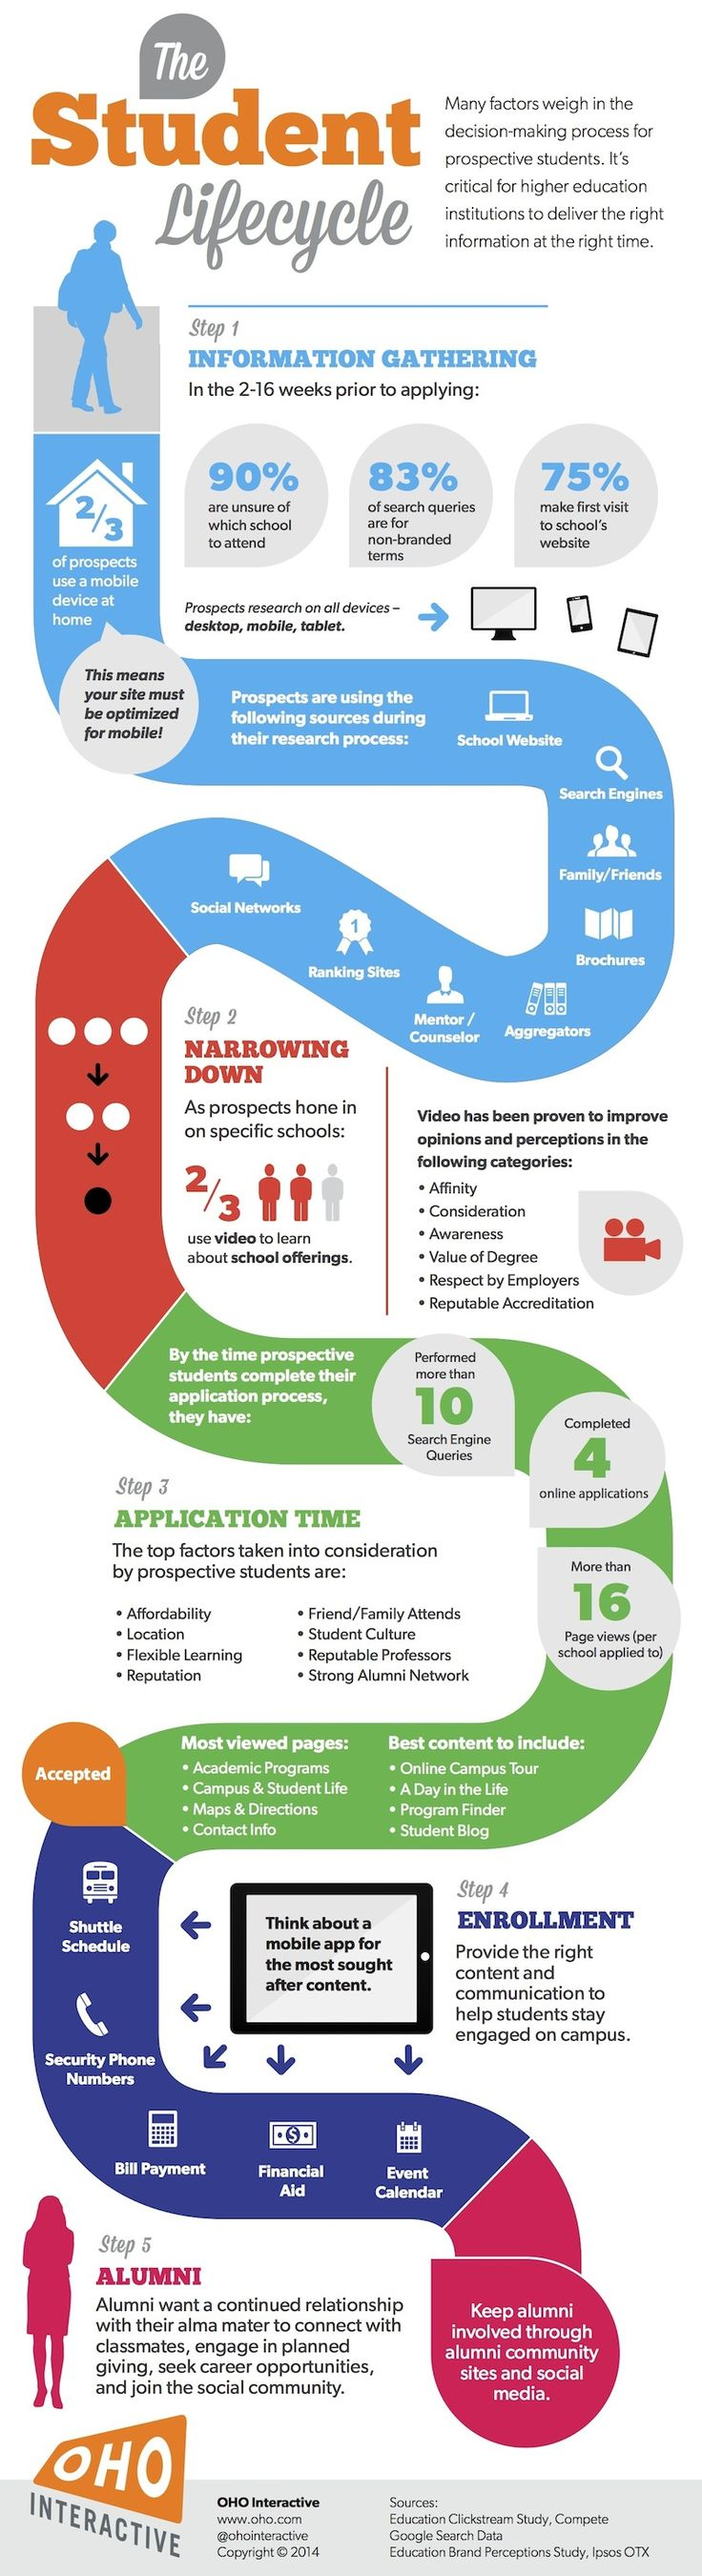 The Student Marketing Lifecycle [INFOGRAPHIC]